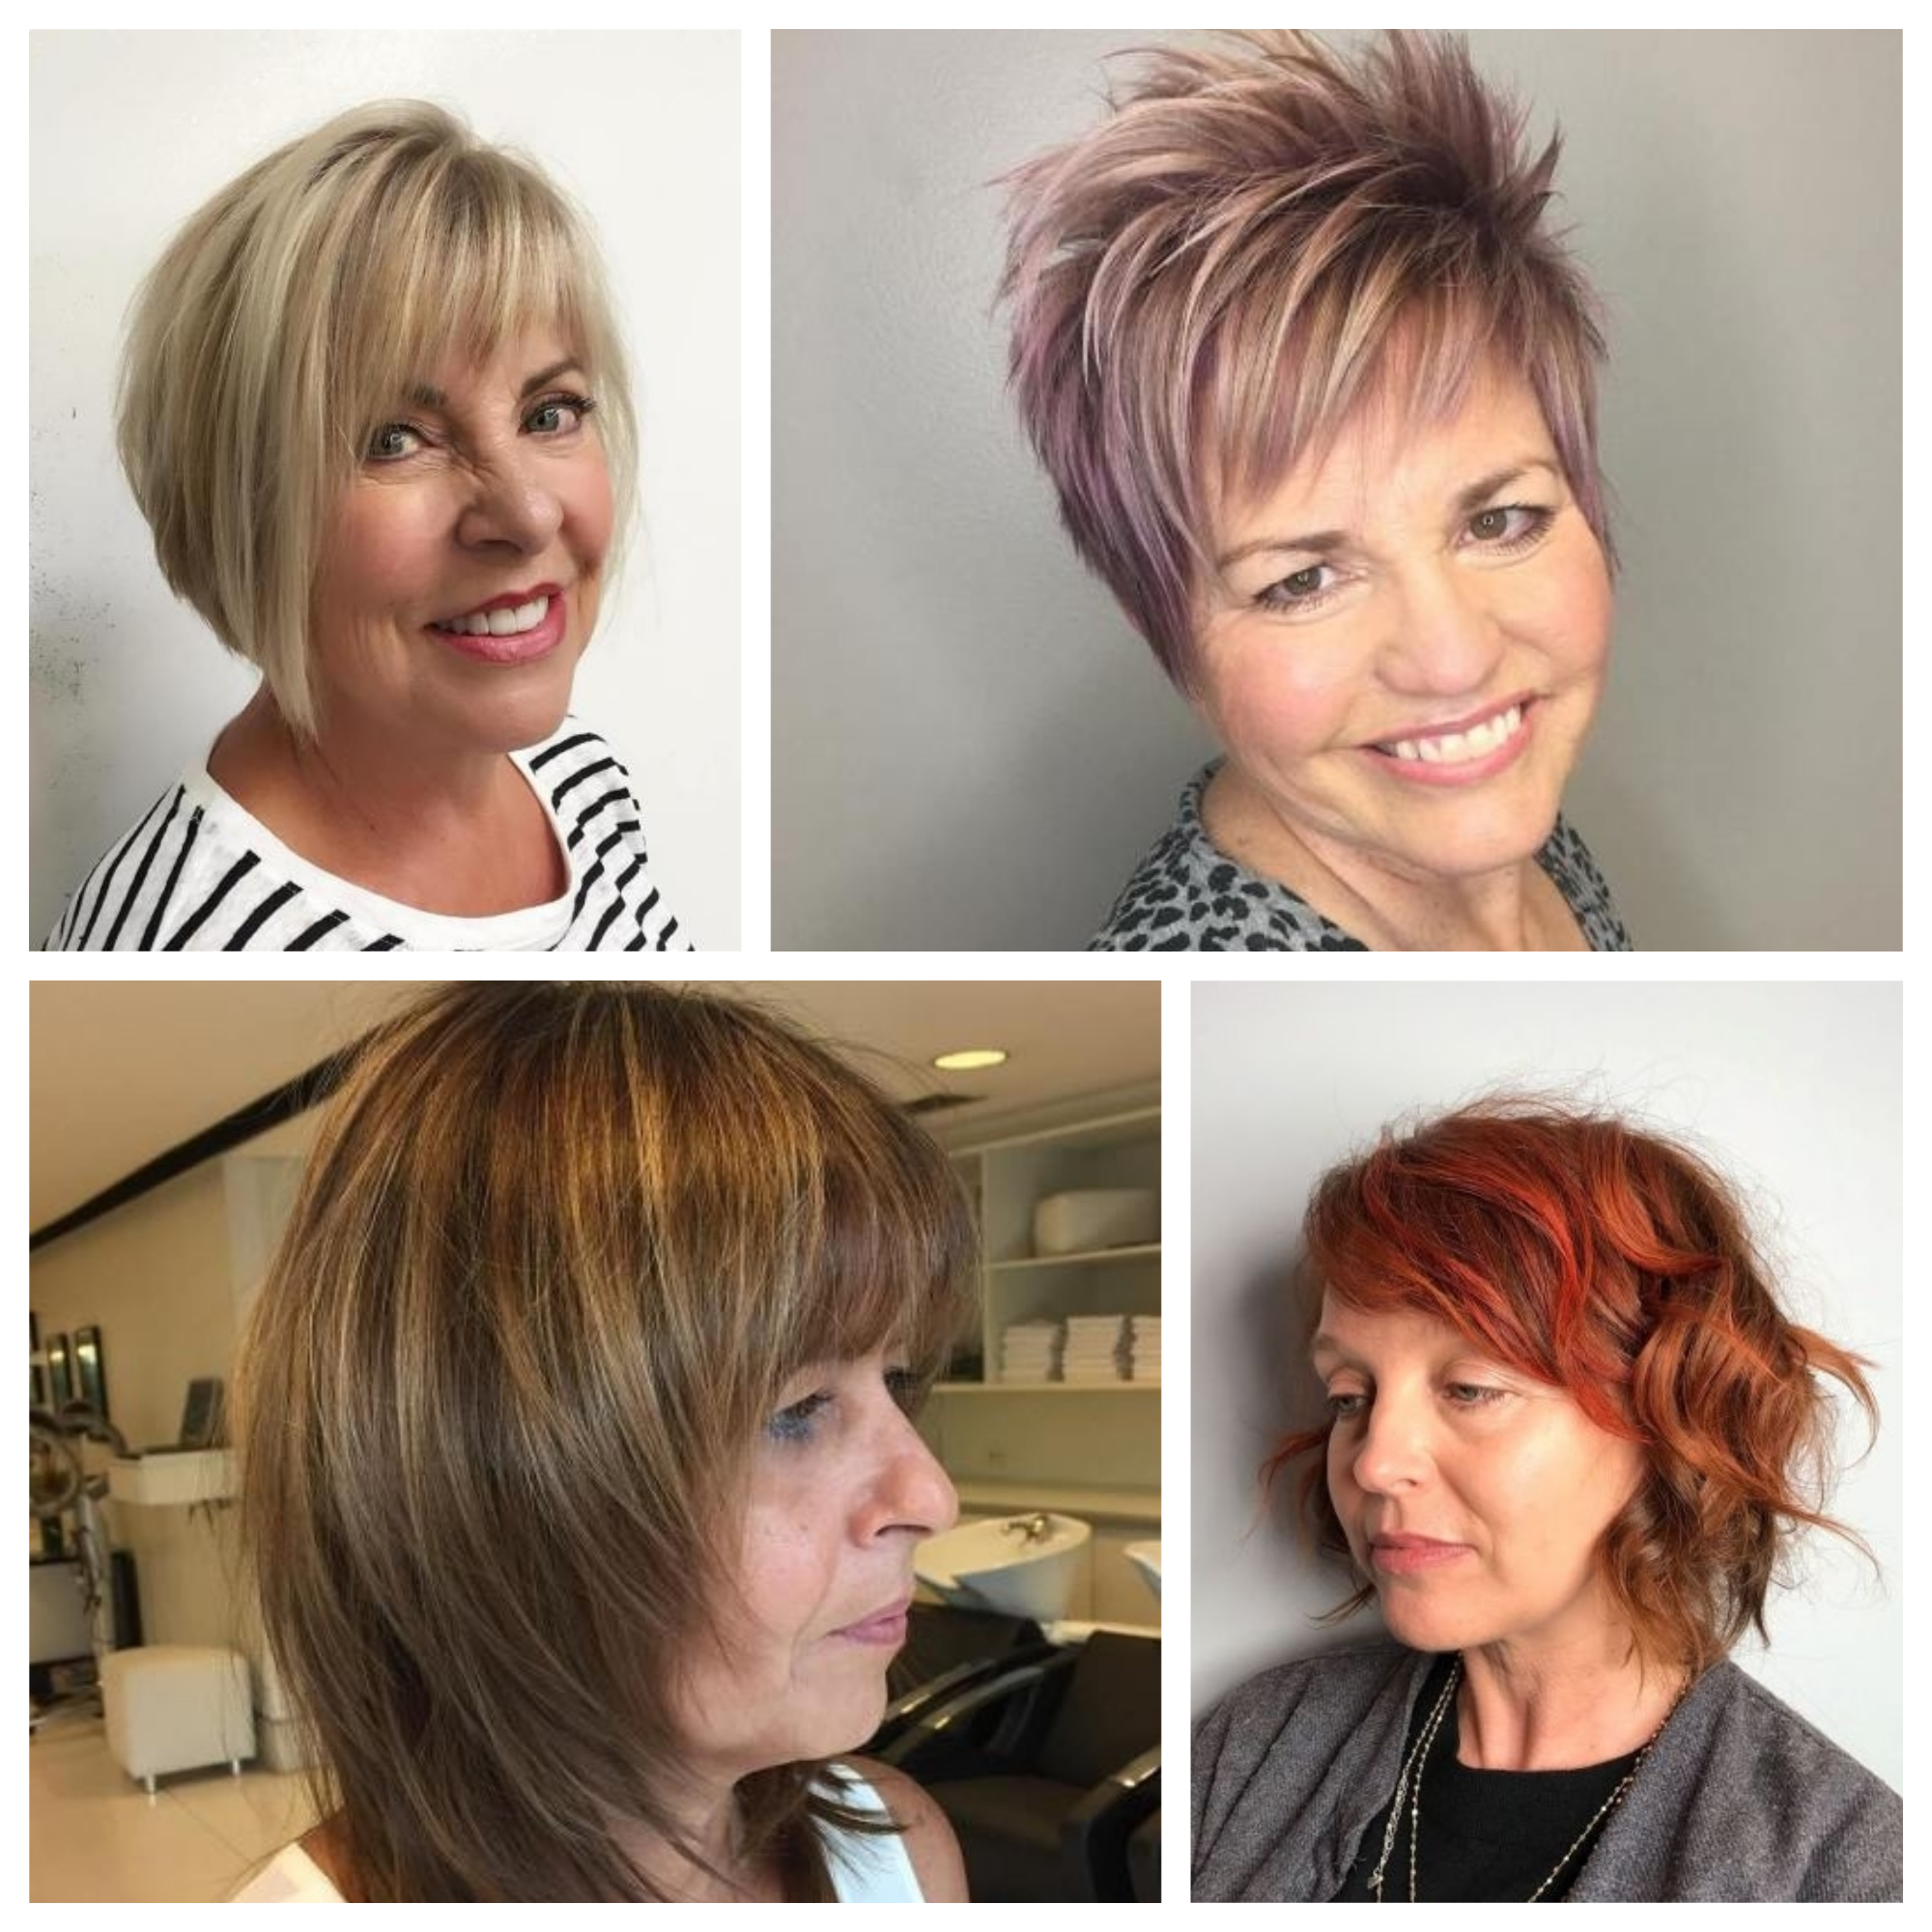 Hairstyles for Mature Women | 2019 Haircuts, Hairstyles ...